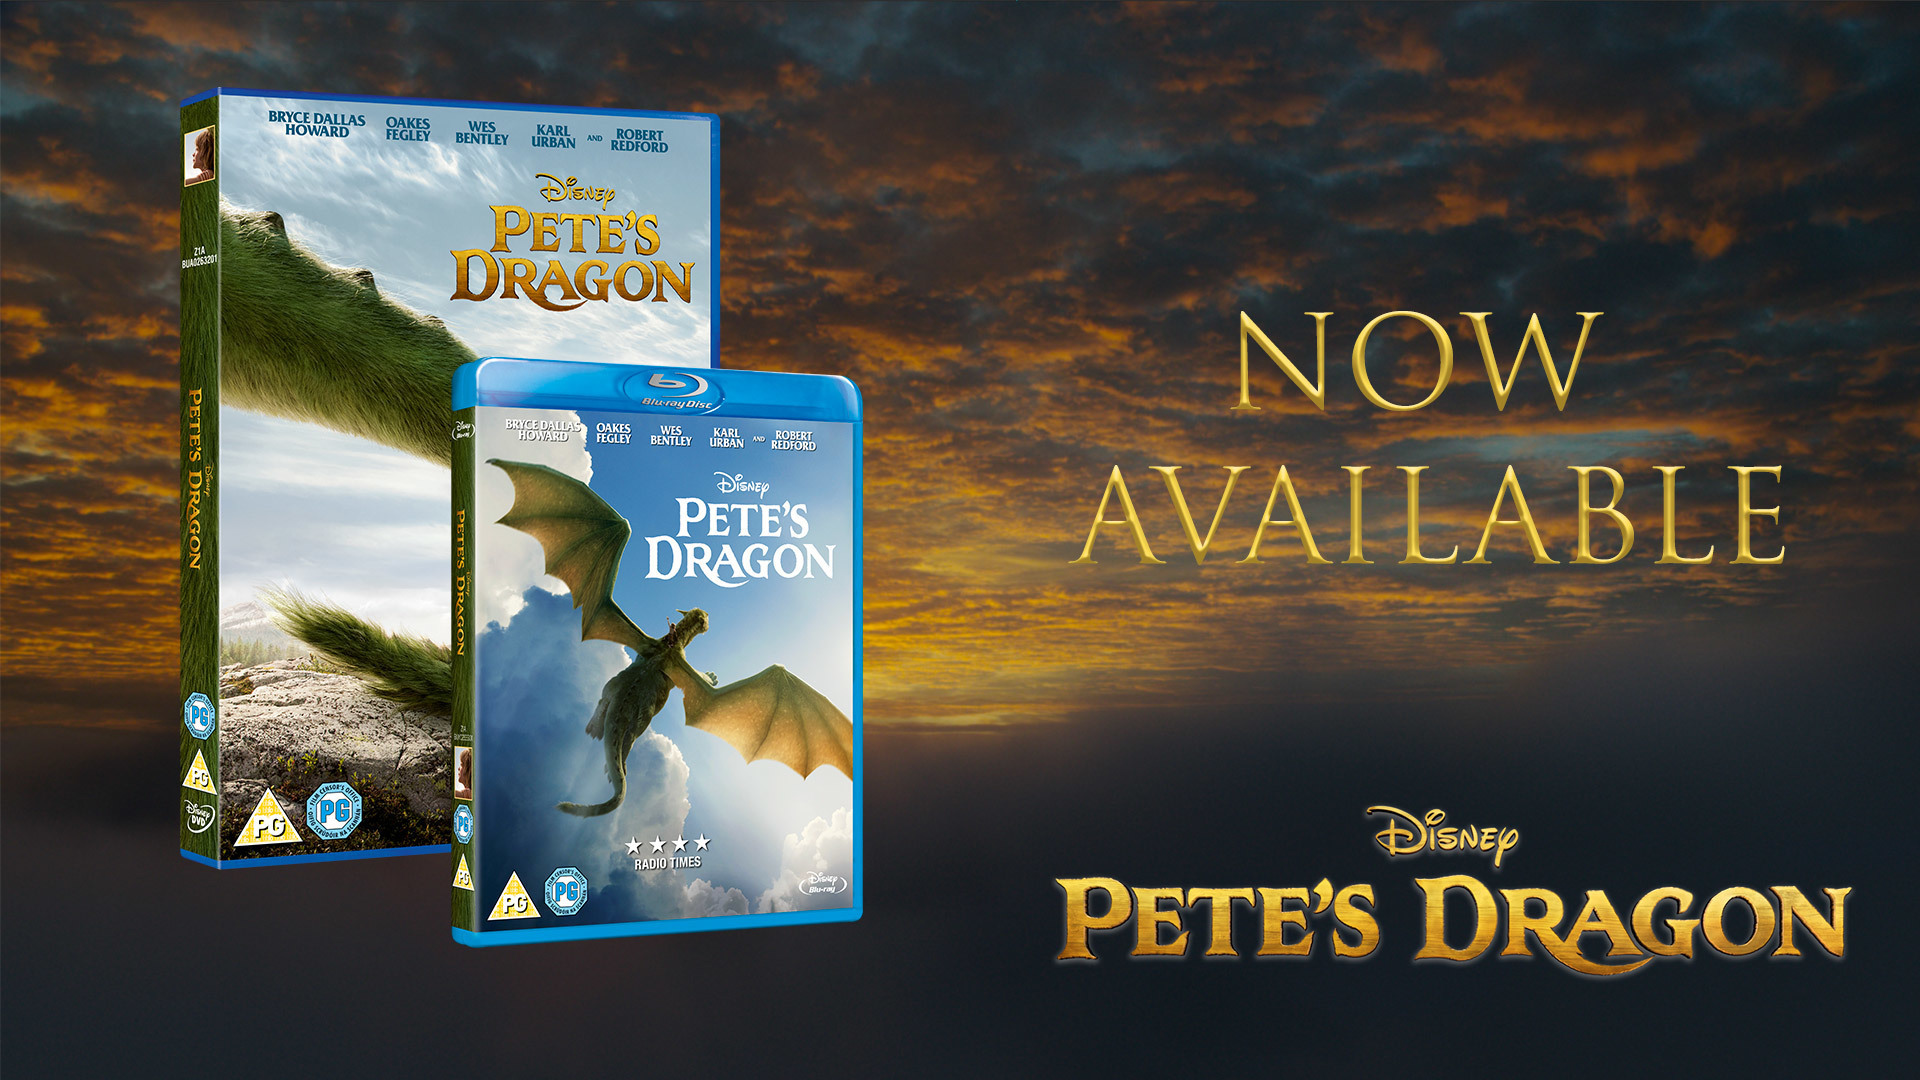 Own Pete's Dragon on DVD, Blu-ray and Digital Download